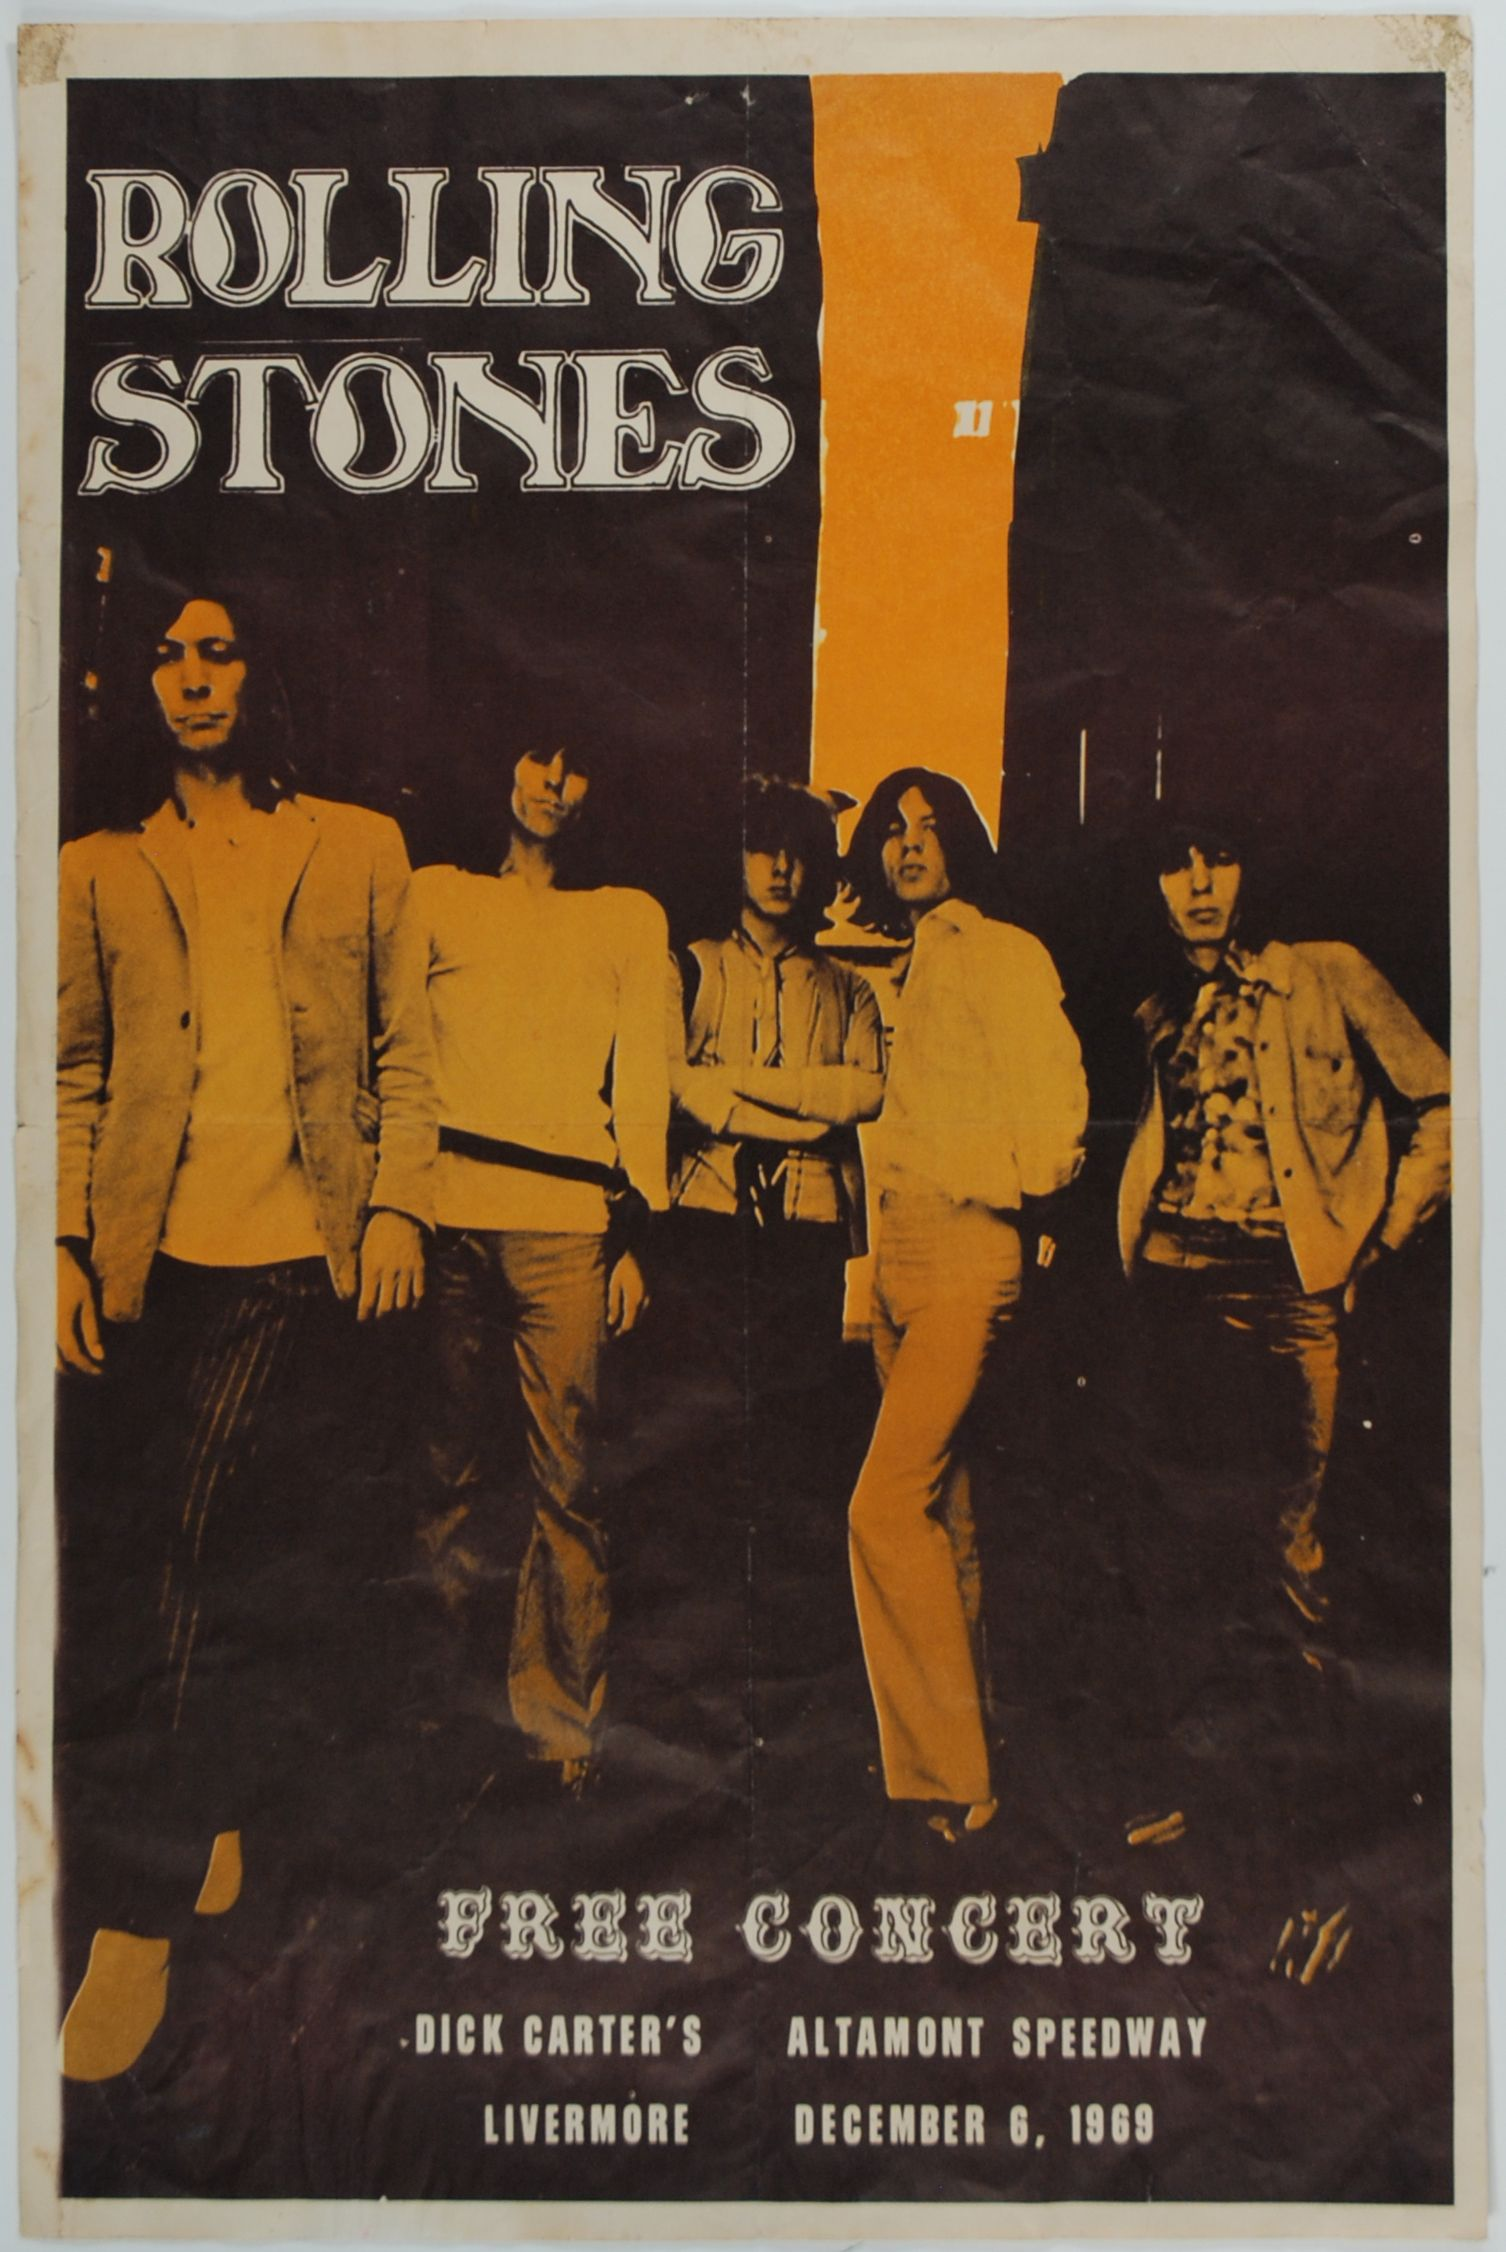 Fifty Years Of Rolling Stones Tour Posters Flashbak